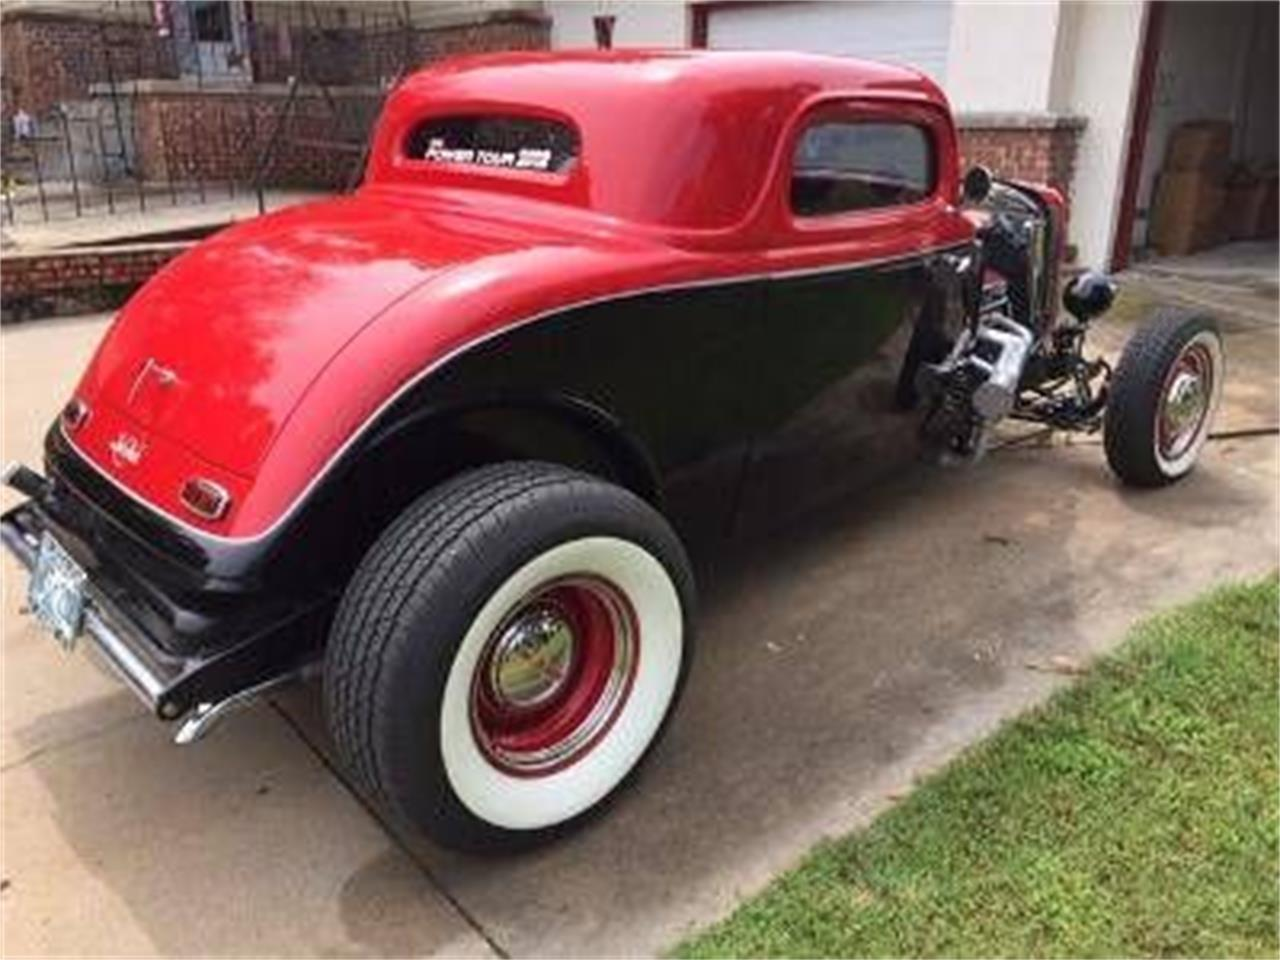 1934 Ford Coupe for sale in Cadillac, MI – photo 3